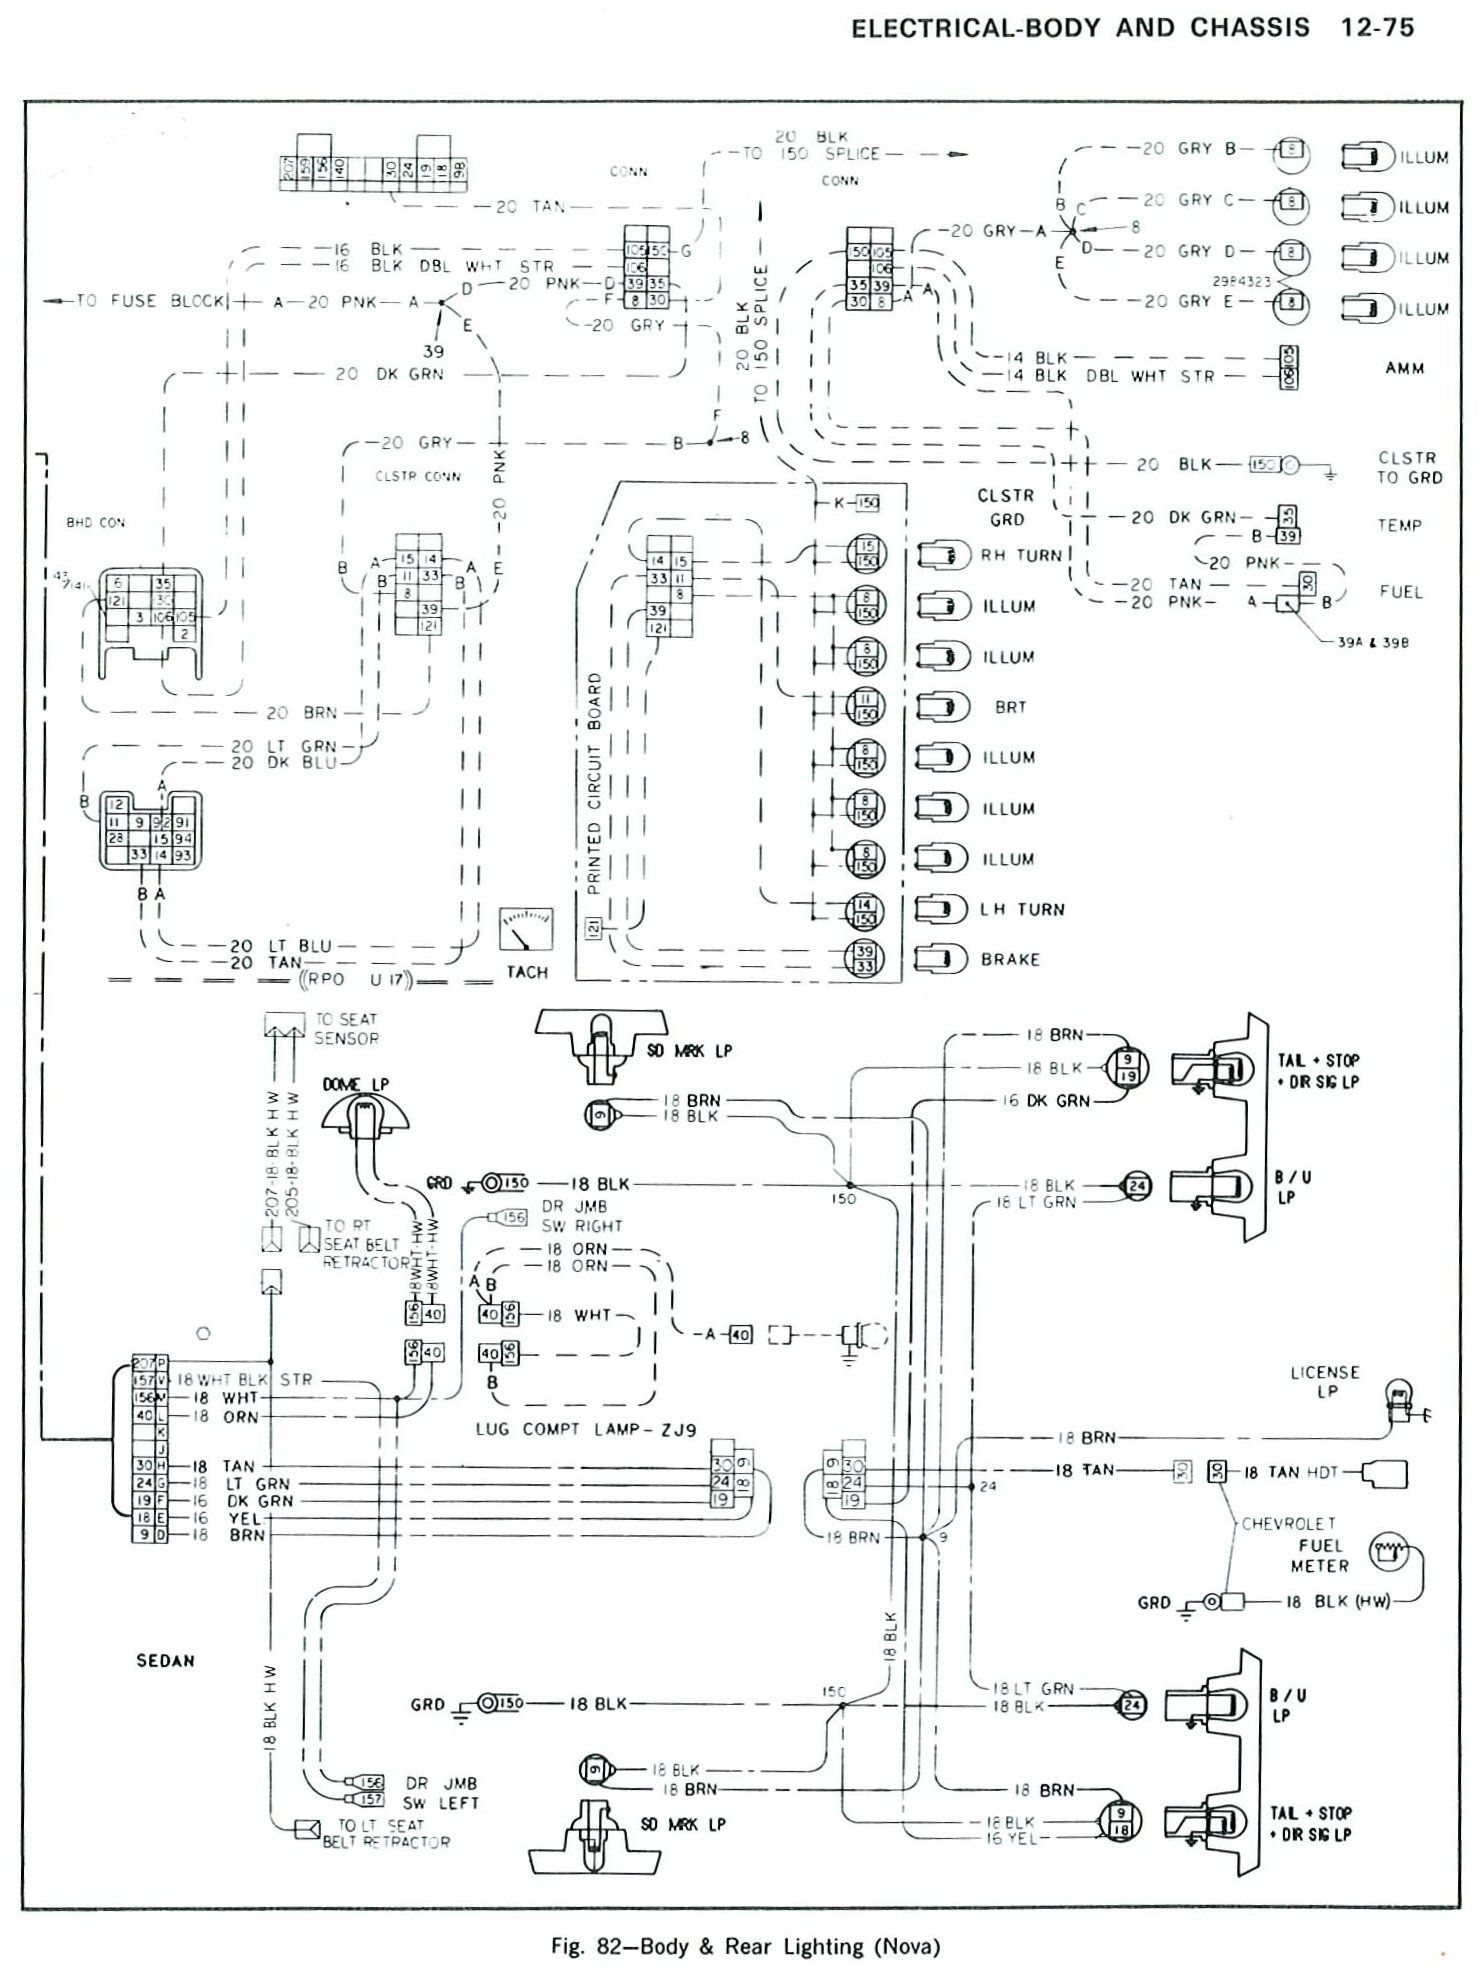 hight resolution of 85 chevy truck wiring diagram looking at the wiring diagram on the electrical forum click here